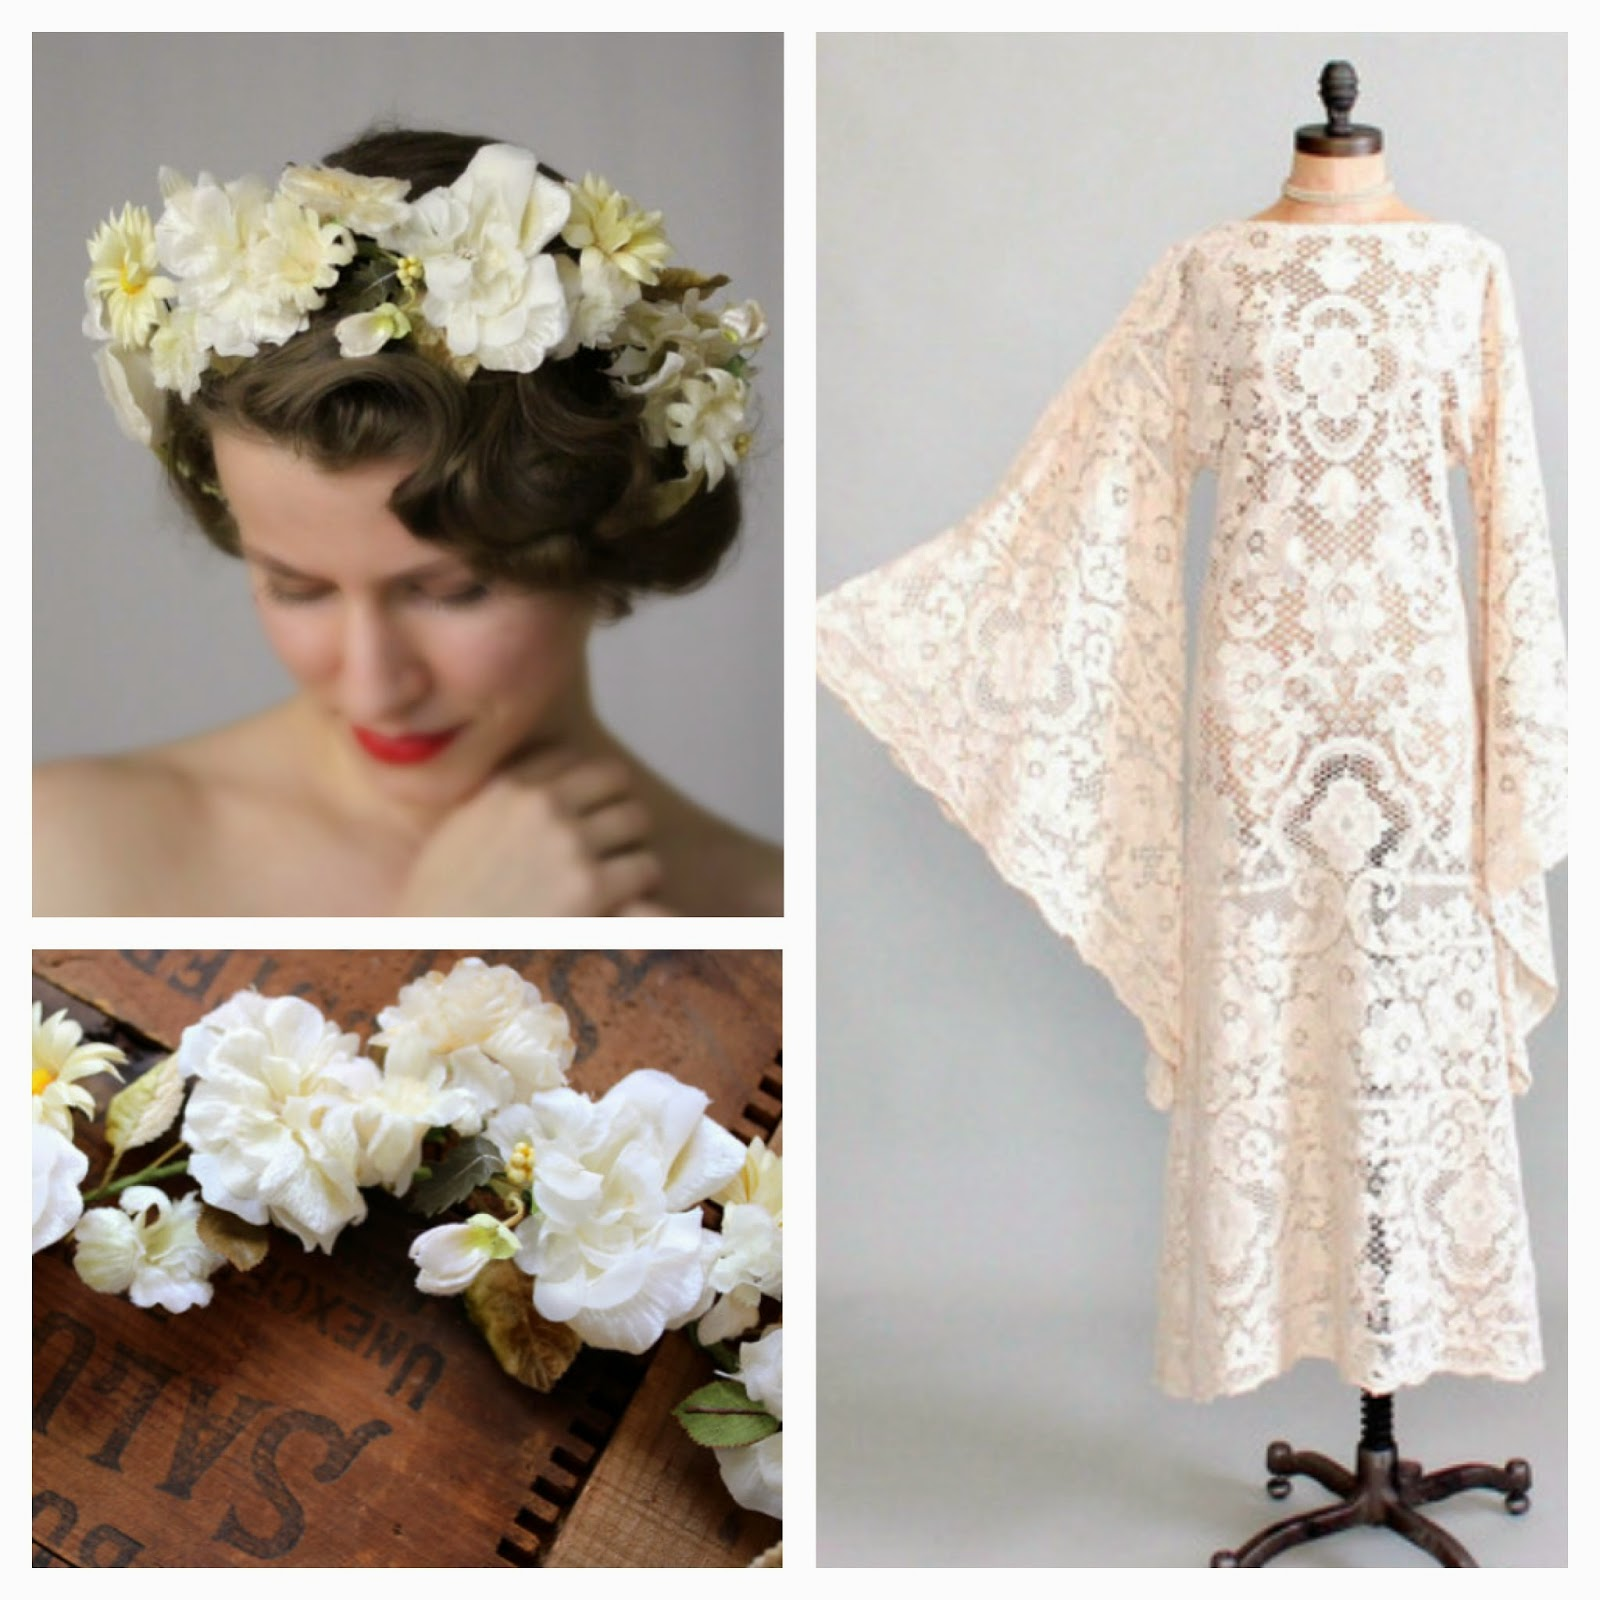 1970s Bohemian Beauty #1970s #bride #vintage #bohemian #wedding #floral #crown #lace